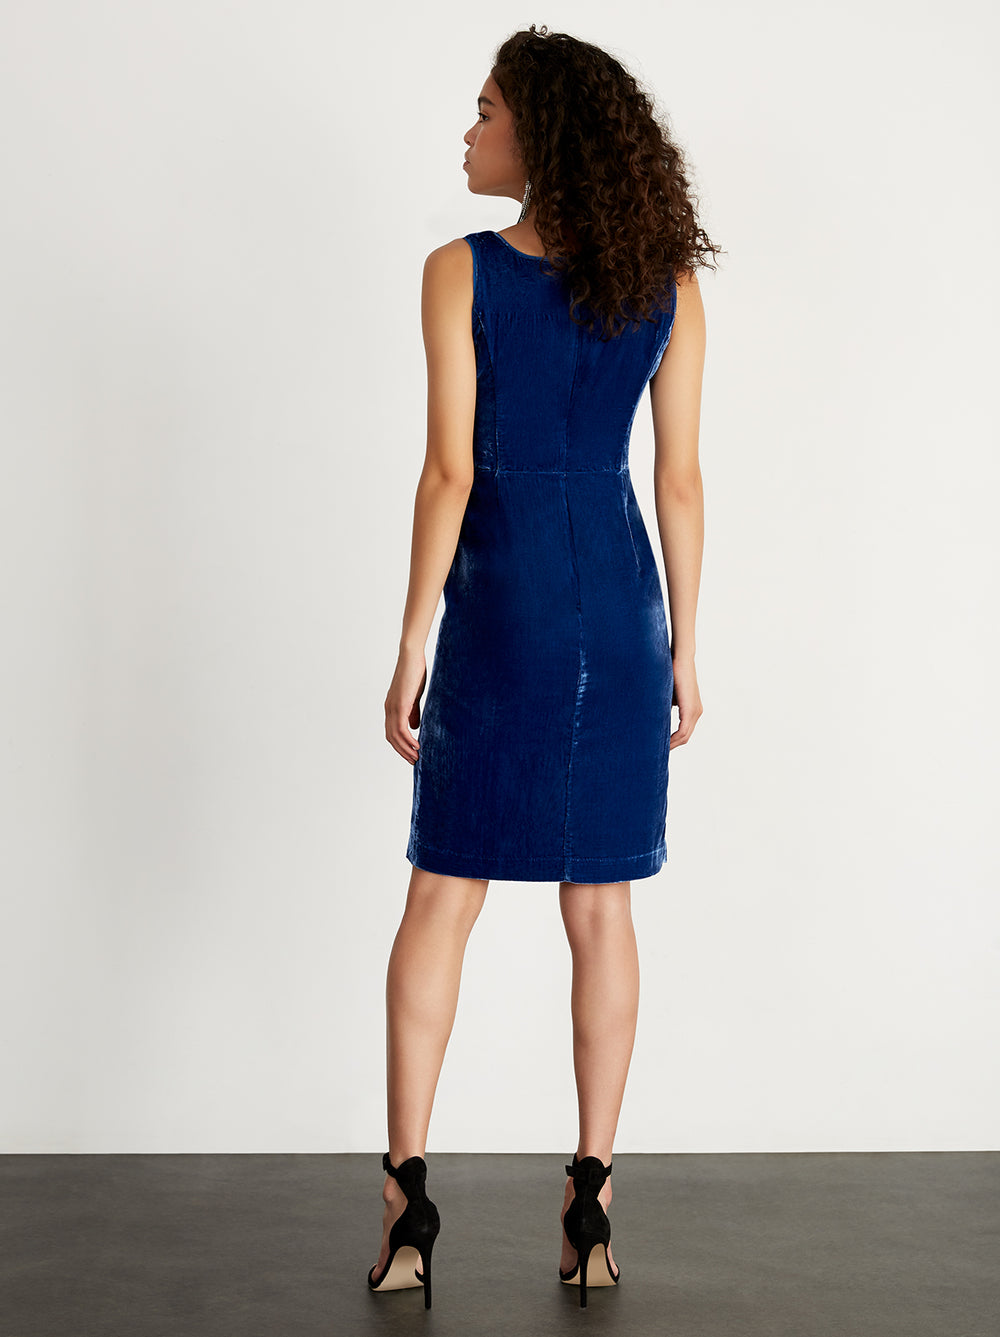 Lucette Blue Embroidered Velvet Dress